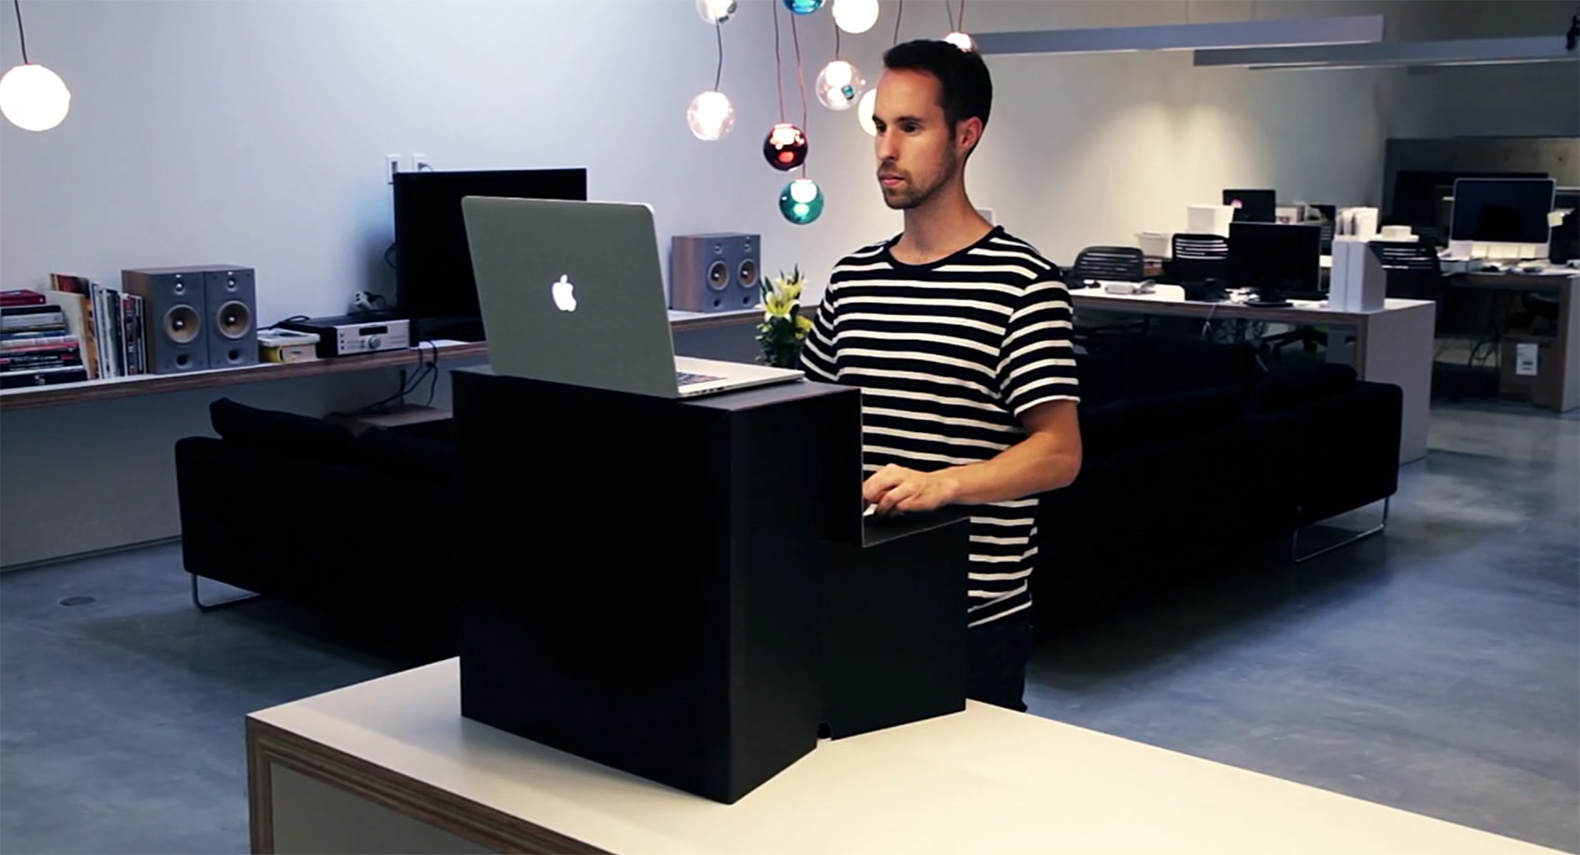 Oristand is a portable folding standing desk that costs